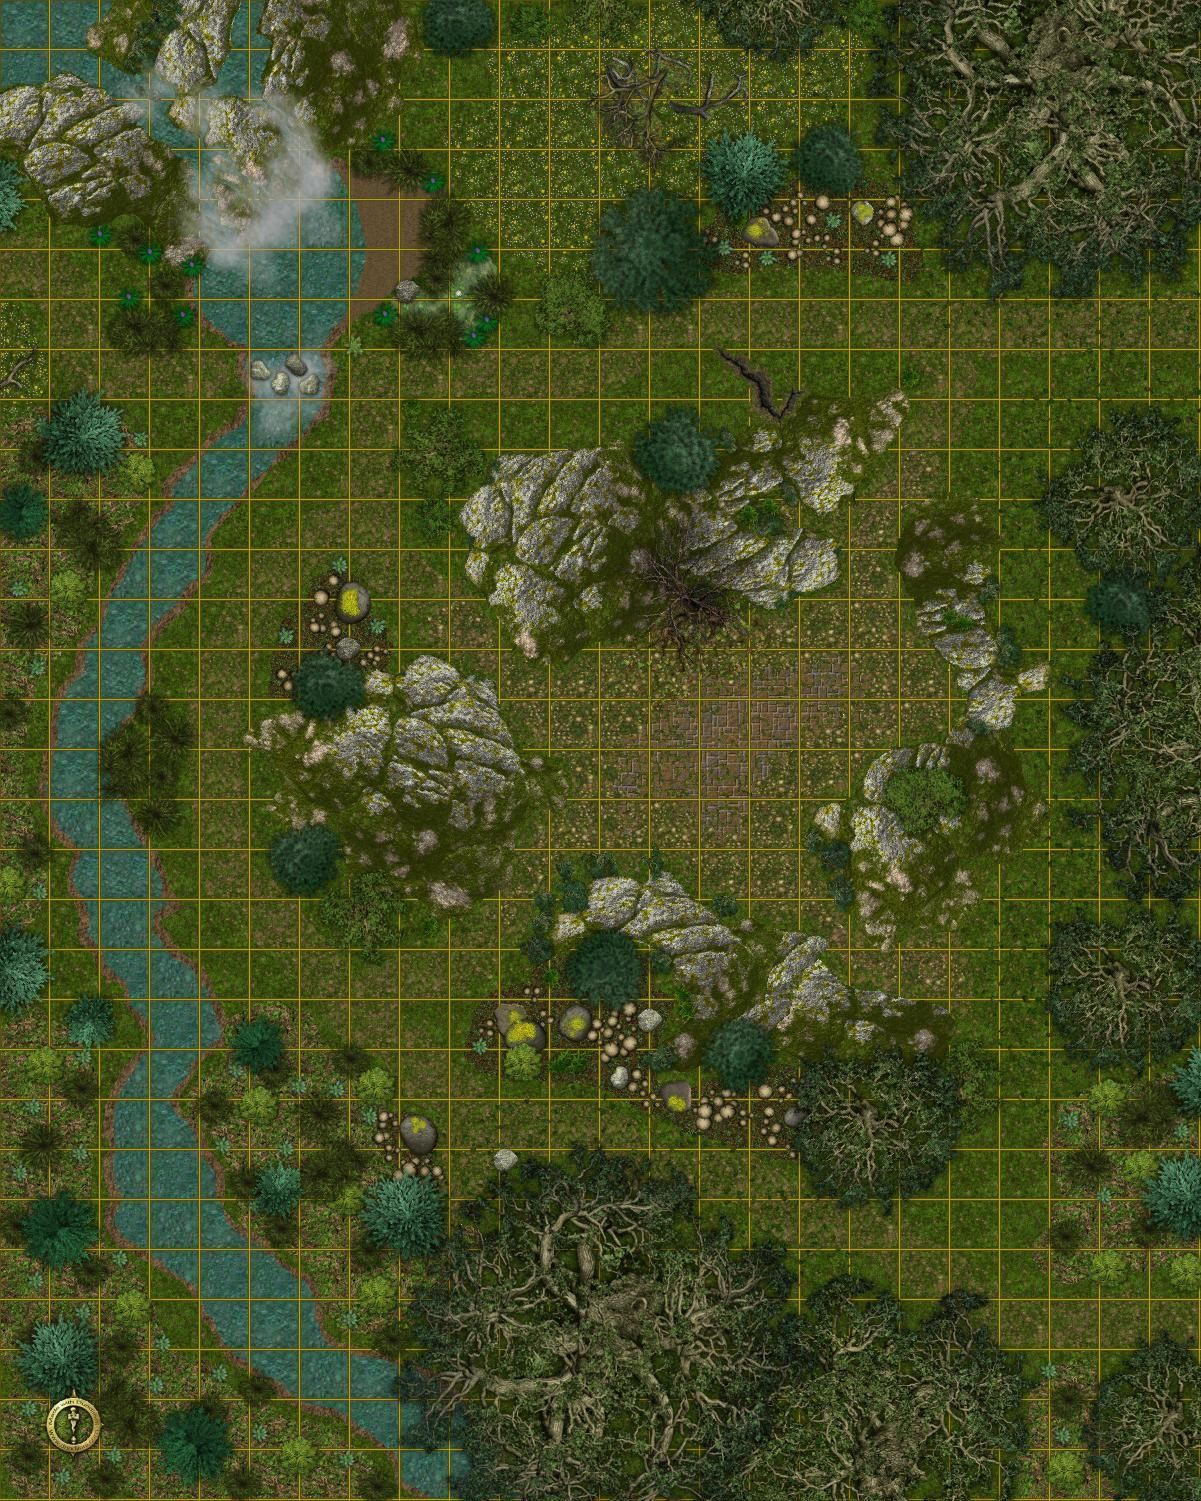 Forest Dnd Map : forest, Dundjinni, Mapping, Software, Forums:, Rocky, Forest, Tabletop, Maps,, Fantasy